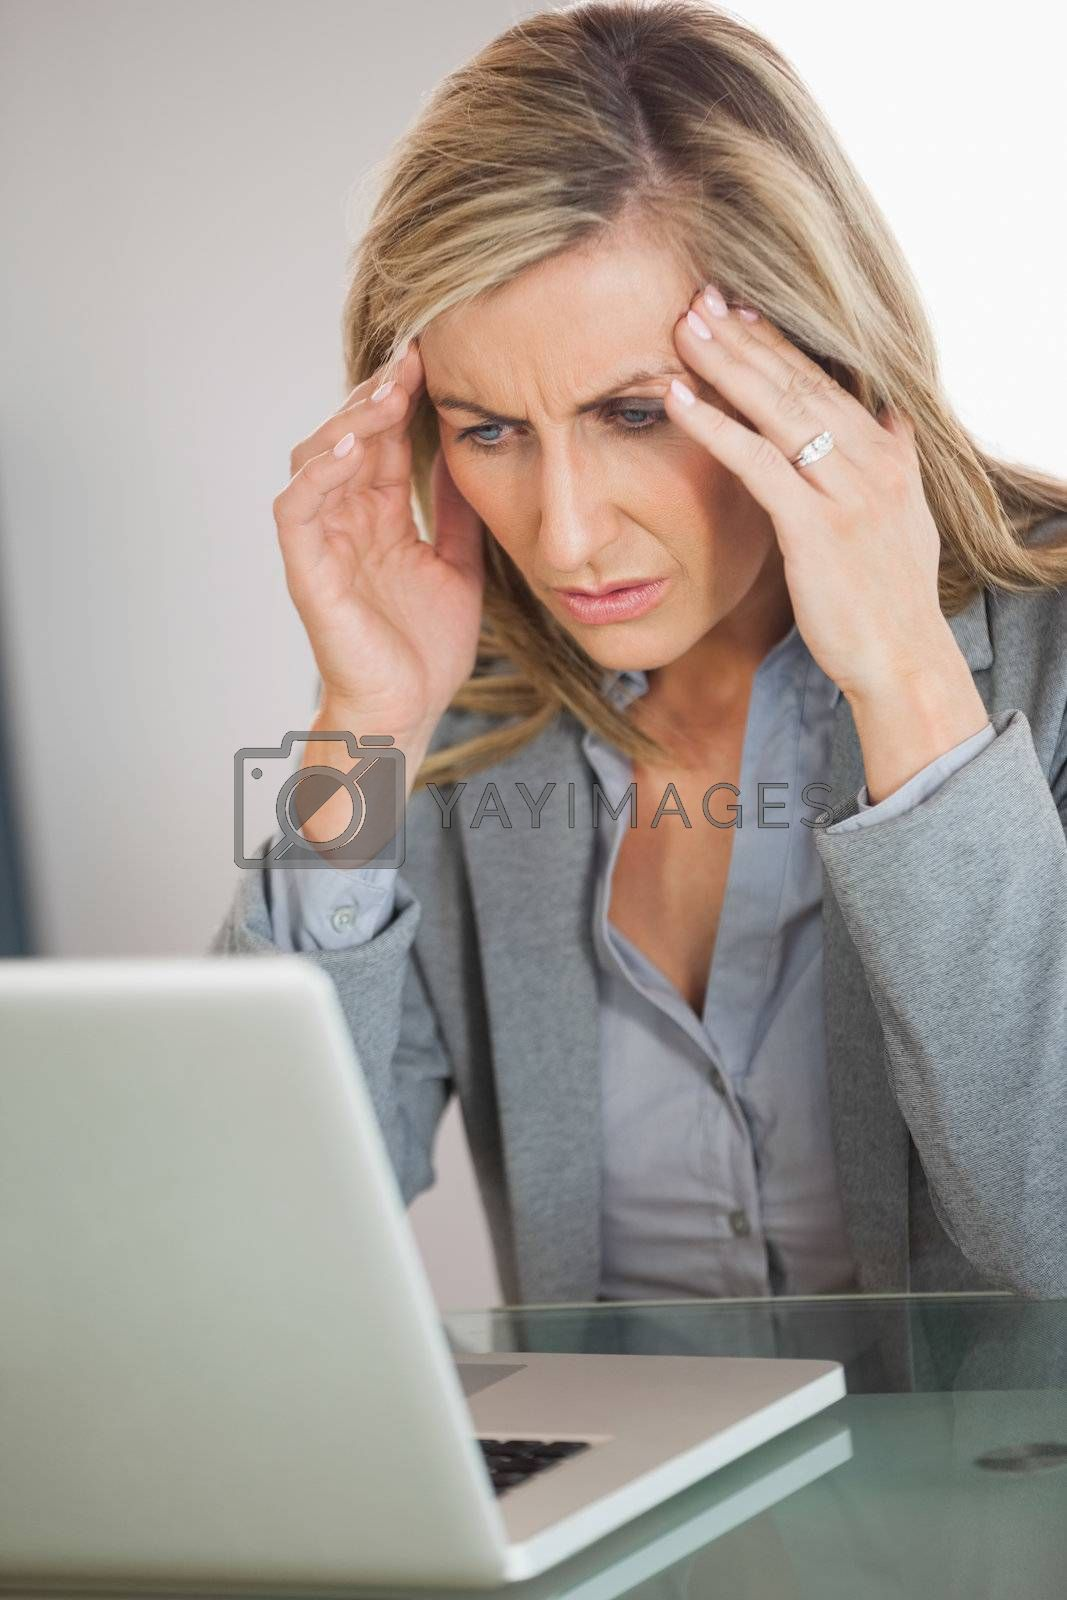 Stressed businesswoman trying to use her laptop by Wavebreakmedia